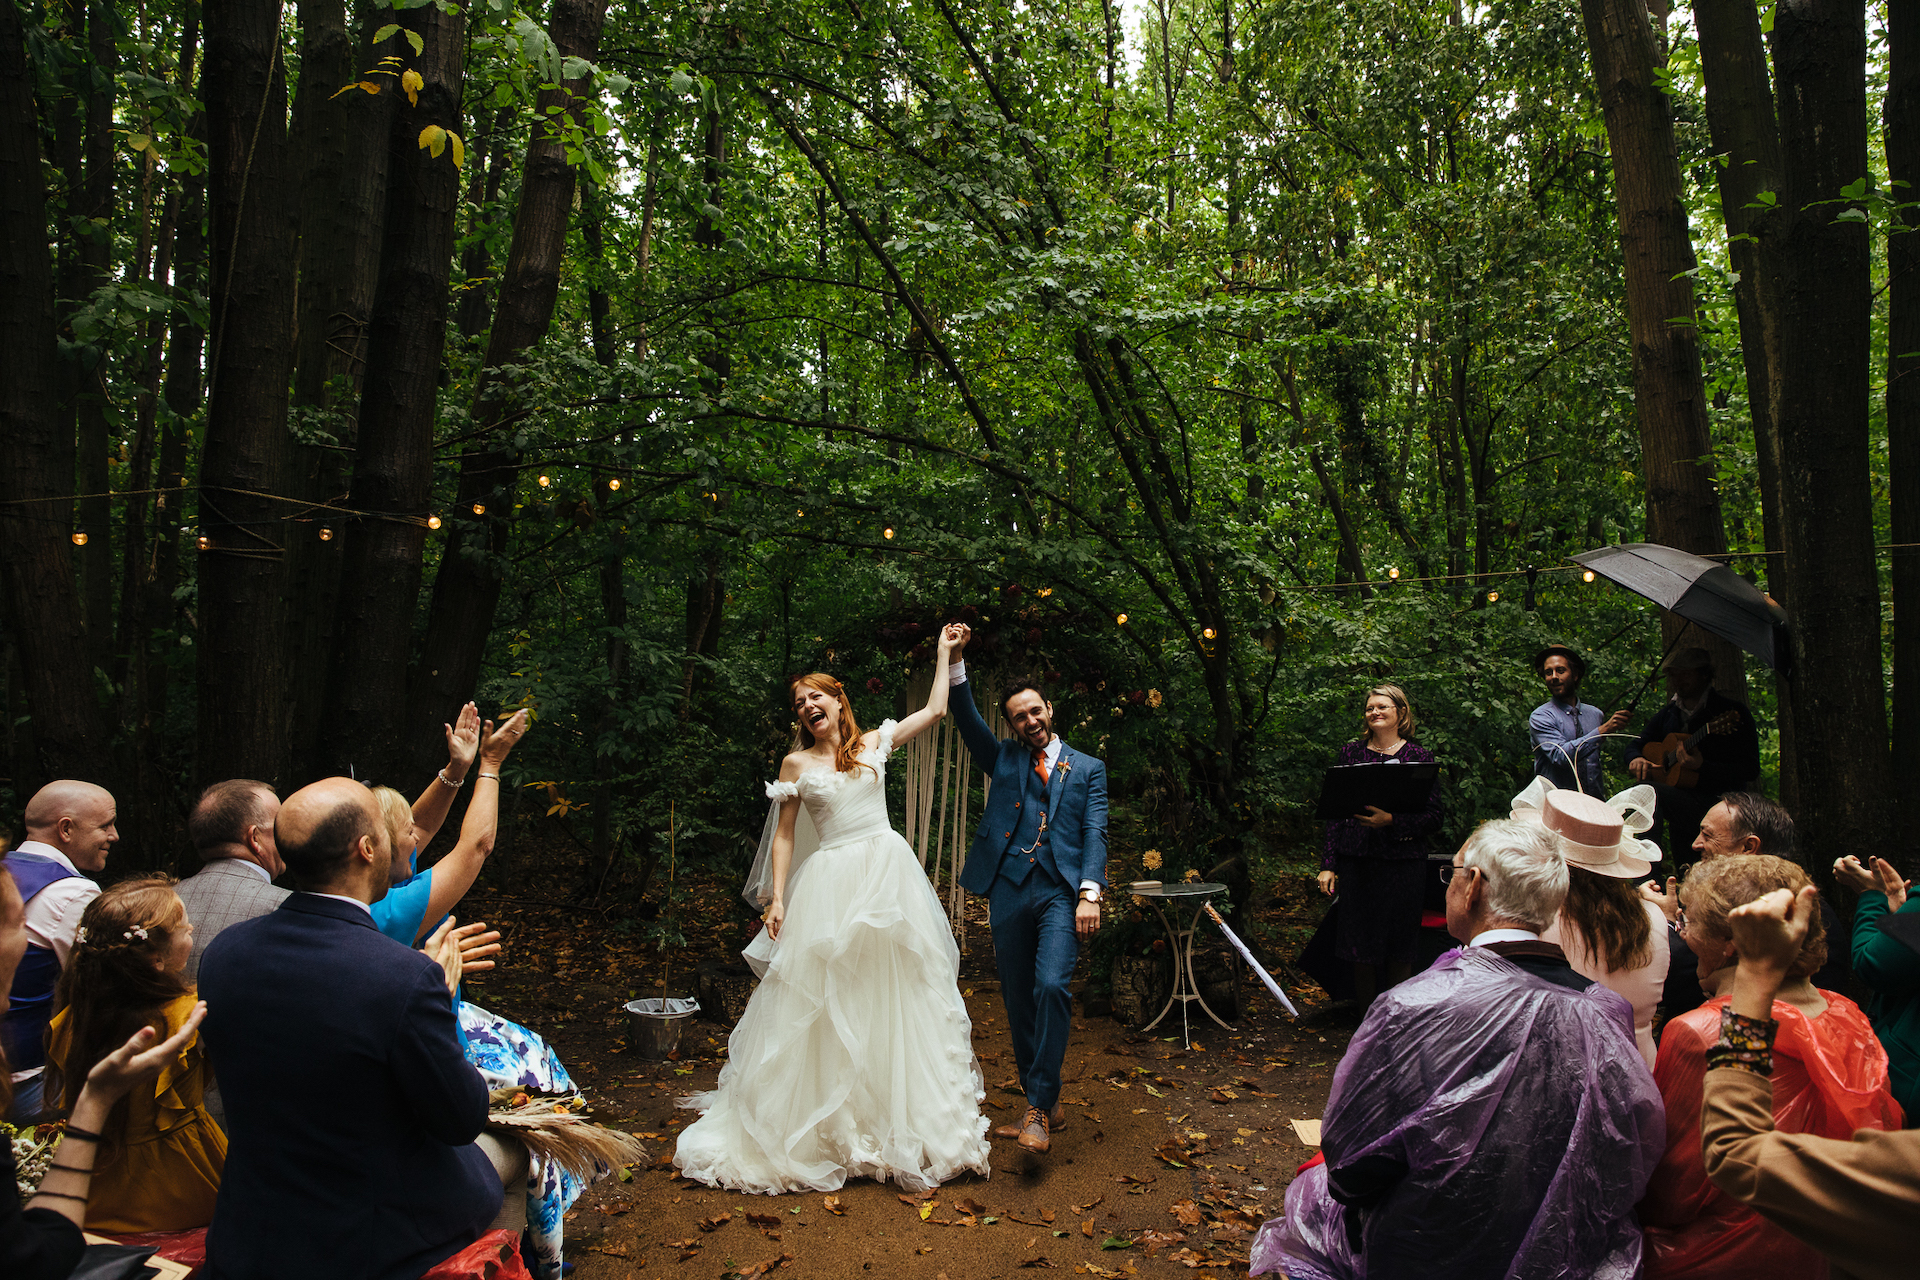 Lyndsey Goddard, of London, is a wedding photographer for